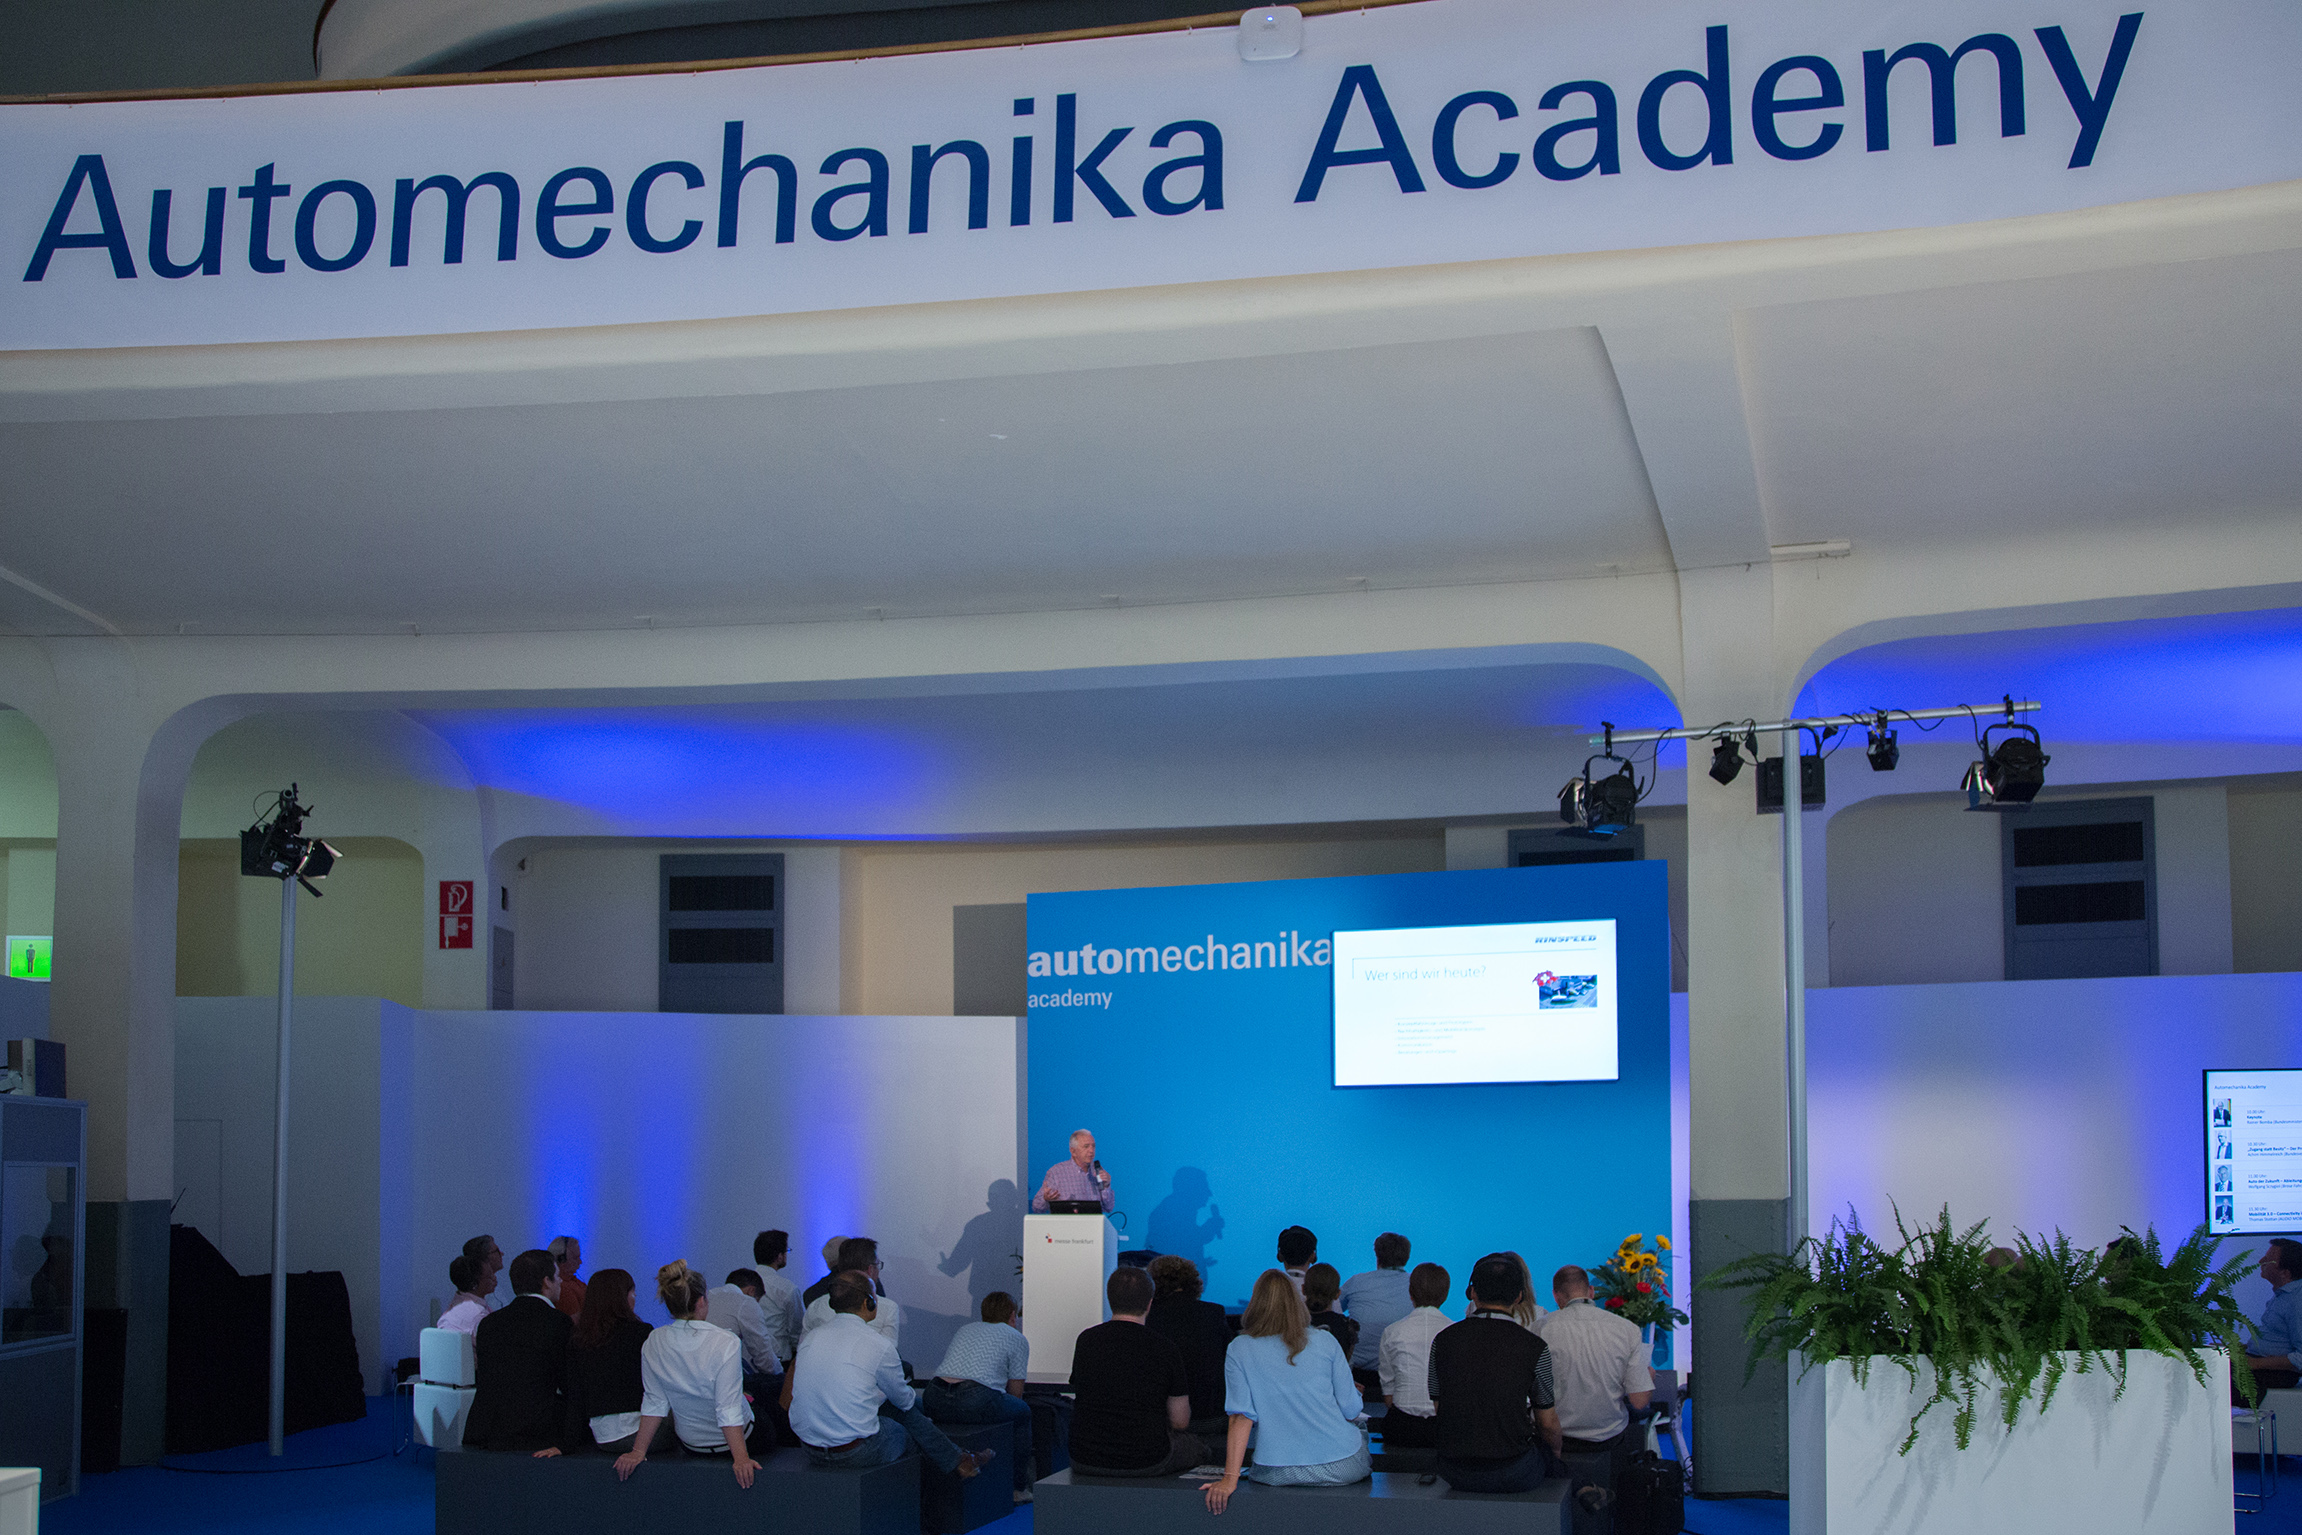 Automechanika Academy